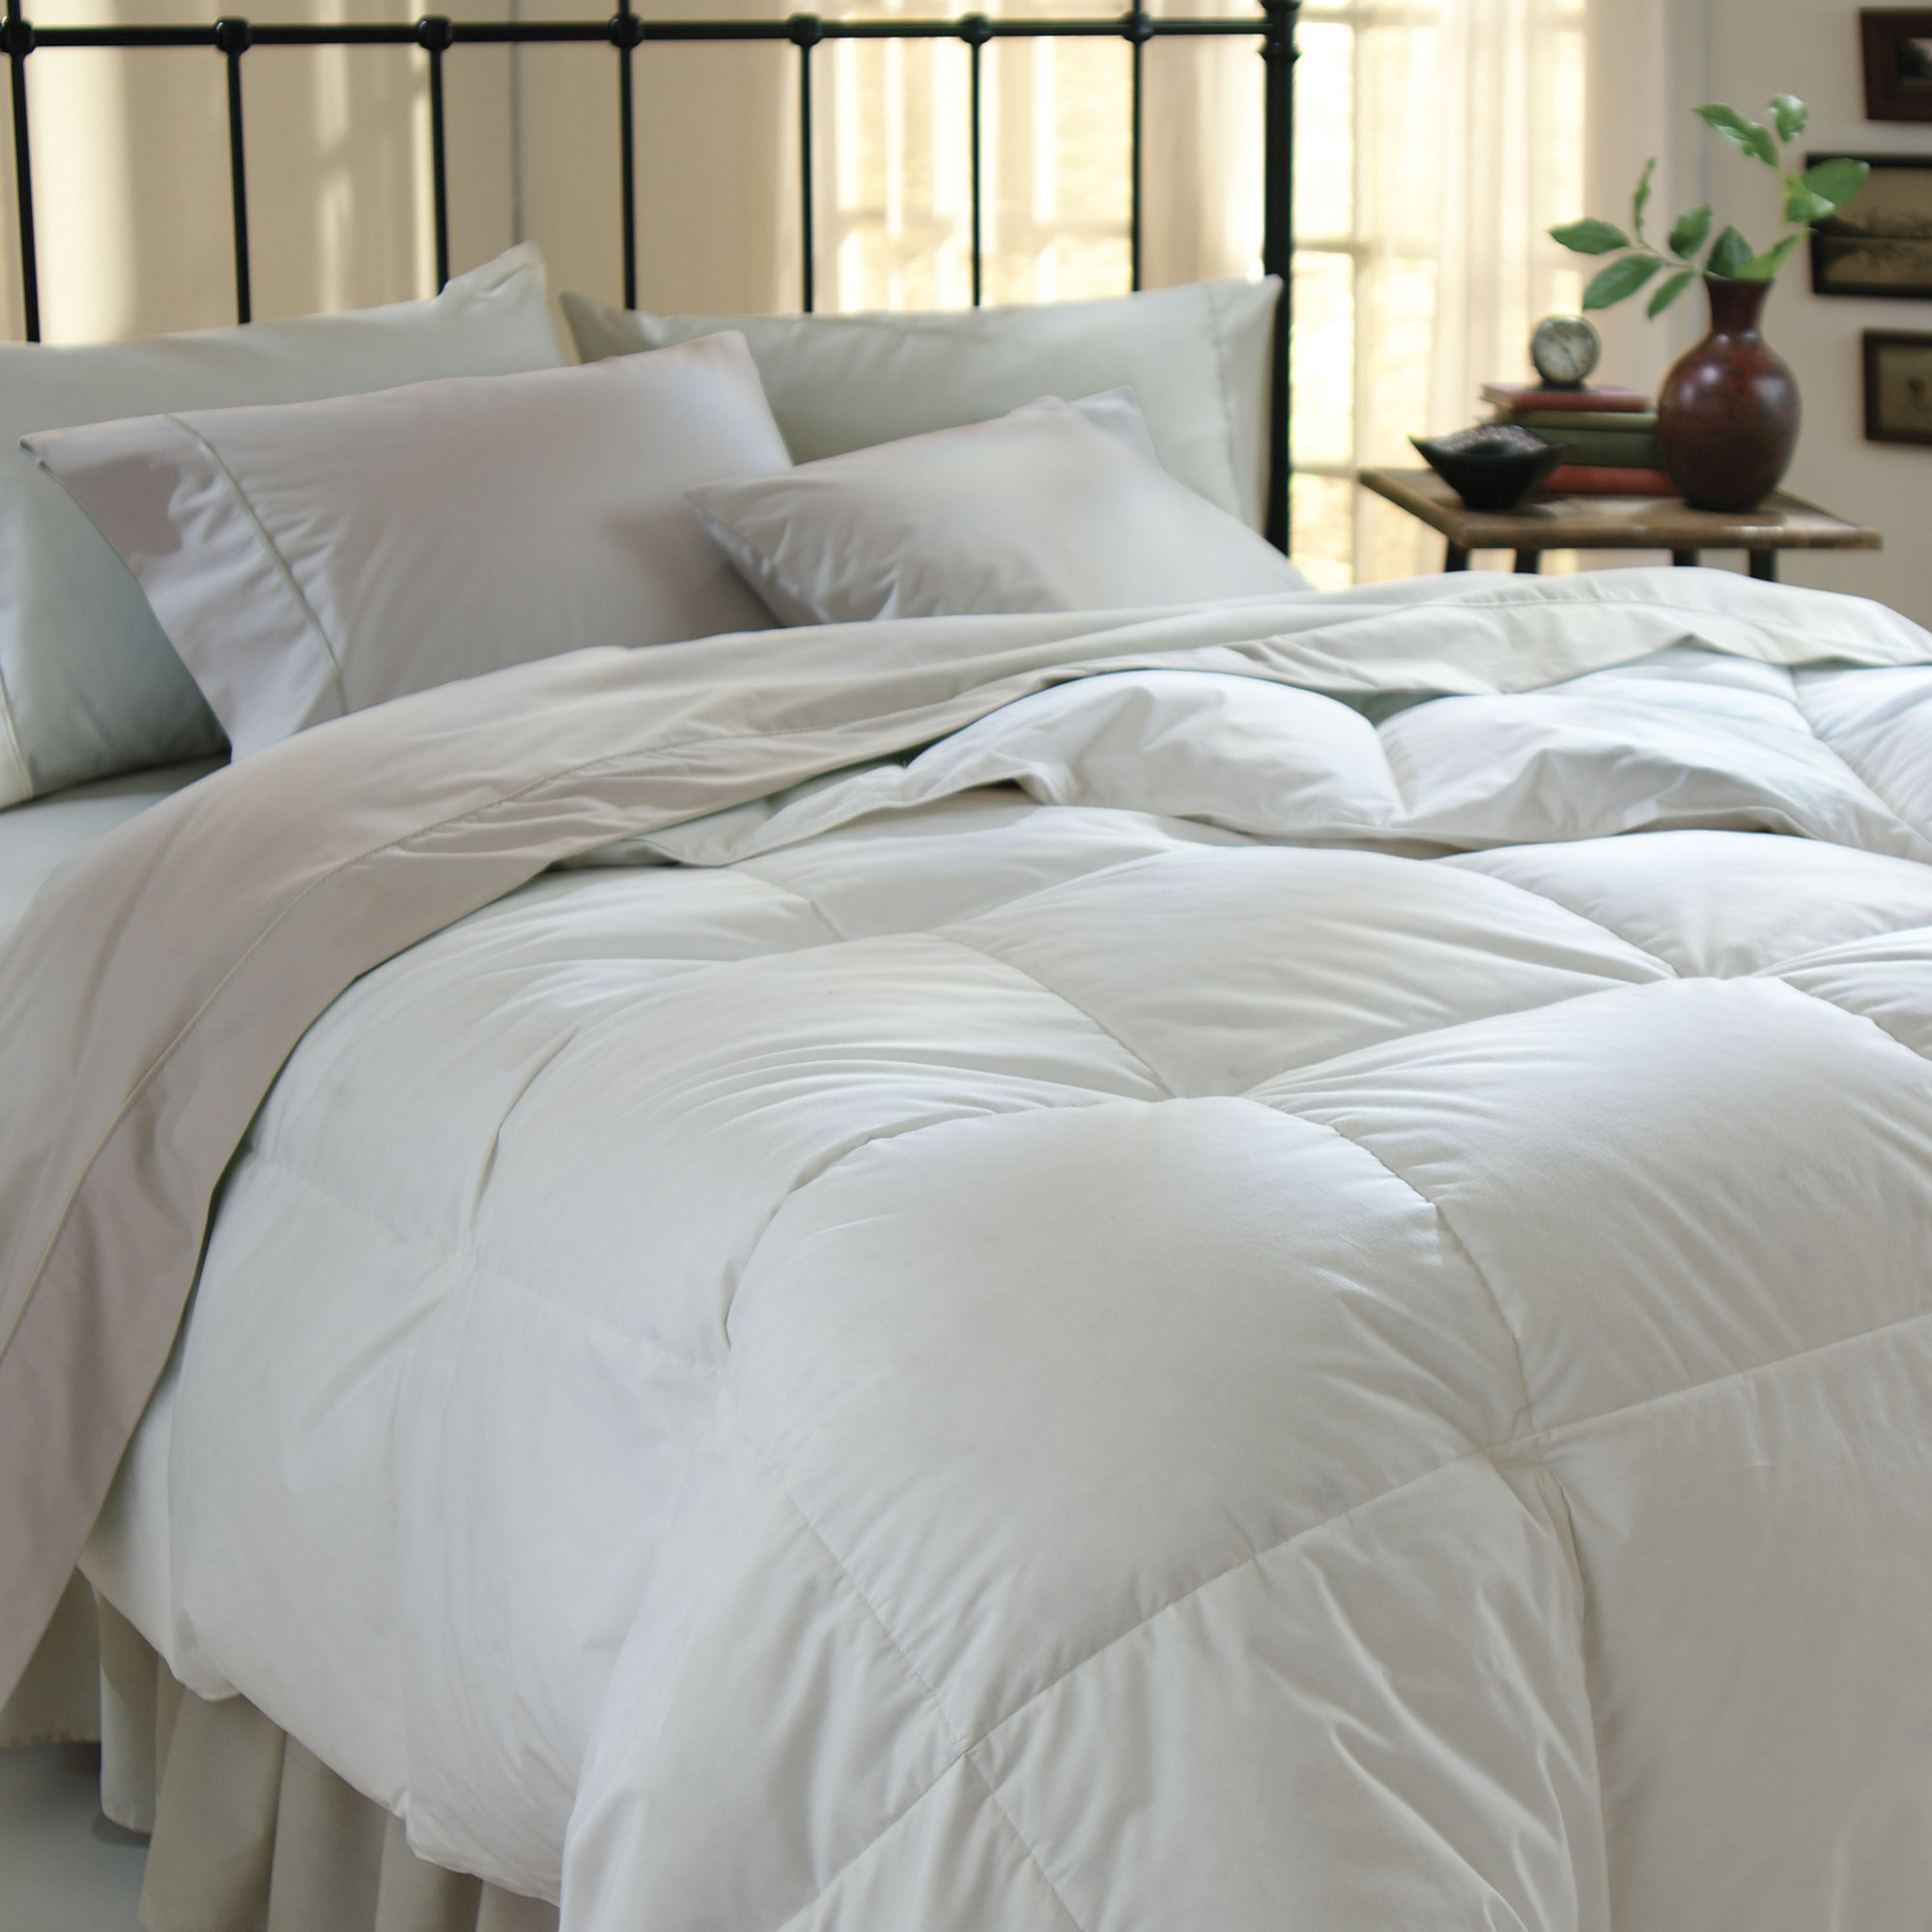 Interesting white comforter sets for charming bedroom ideas with white comforter sets queen